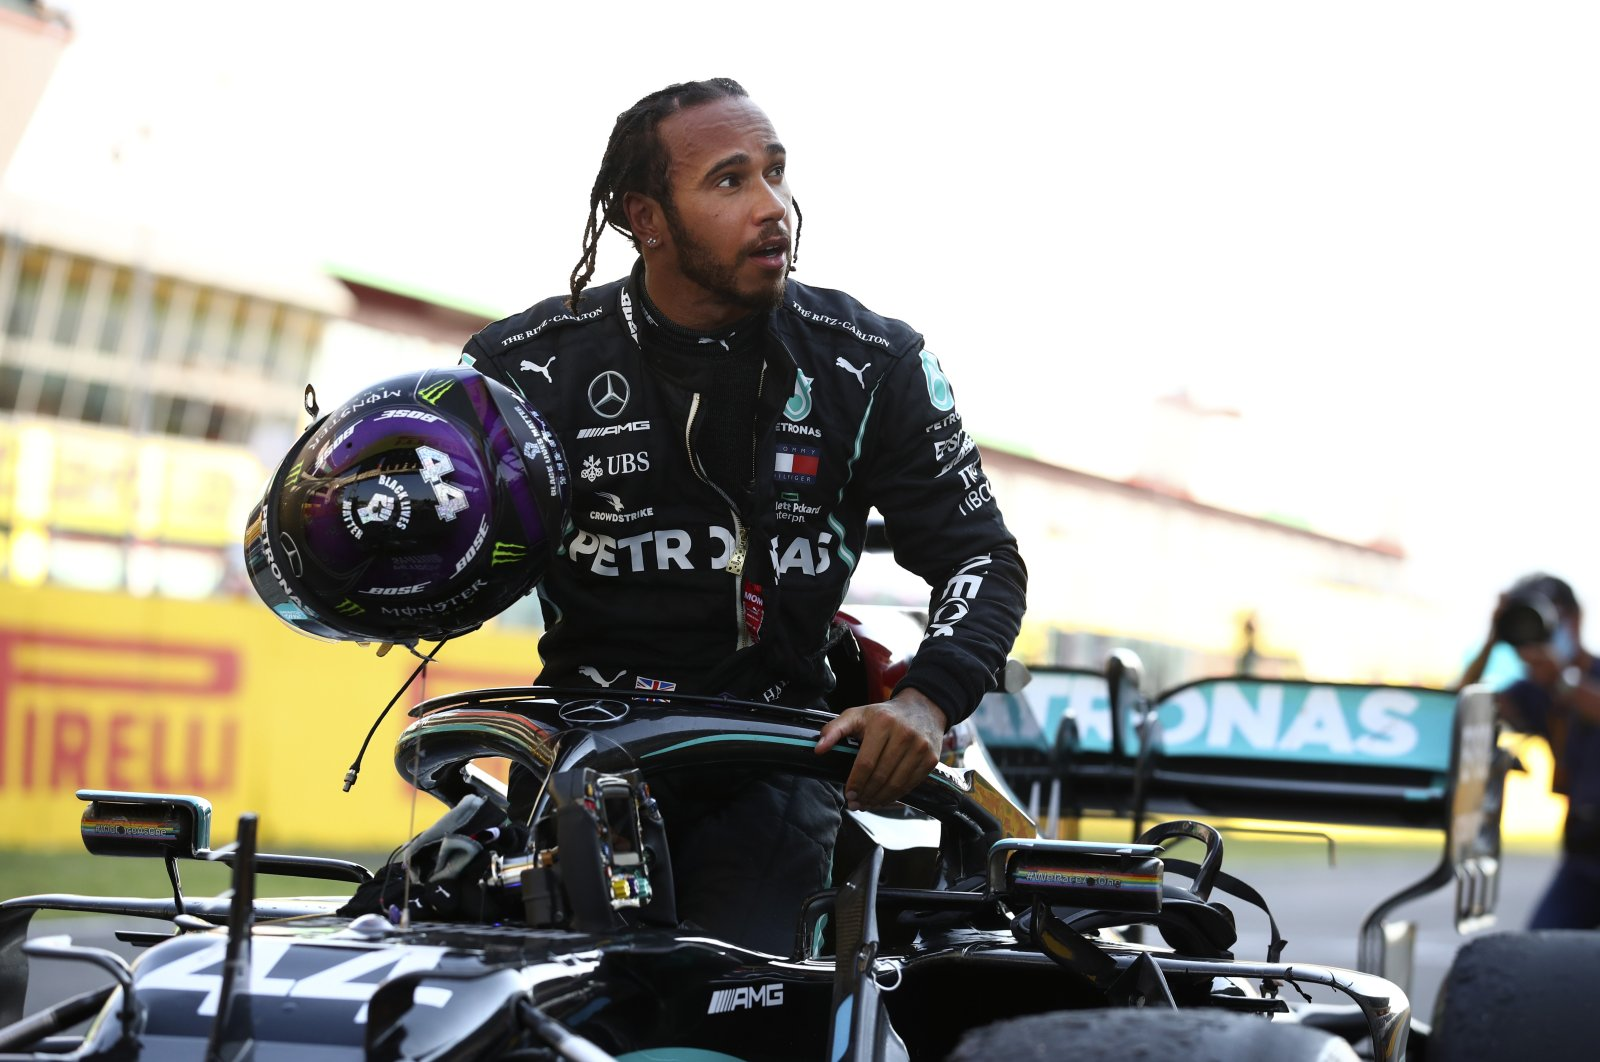 Mercedes driver Lewis Hamilton steps out of his car after winning the Formula 1 Tuscany Grand Prix, in Scarperia, Italy, Sept. 13, 2020. (AP Photo)